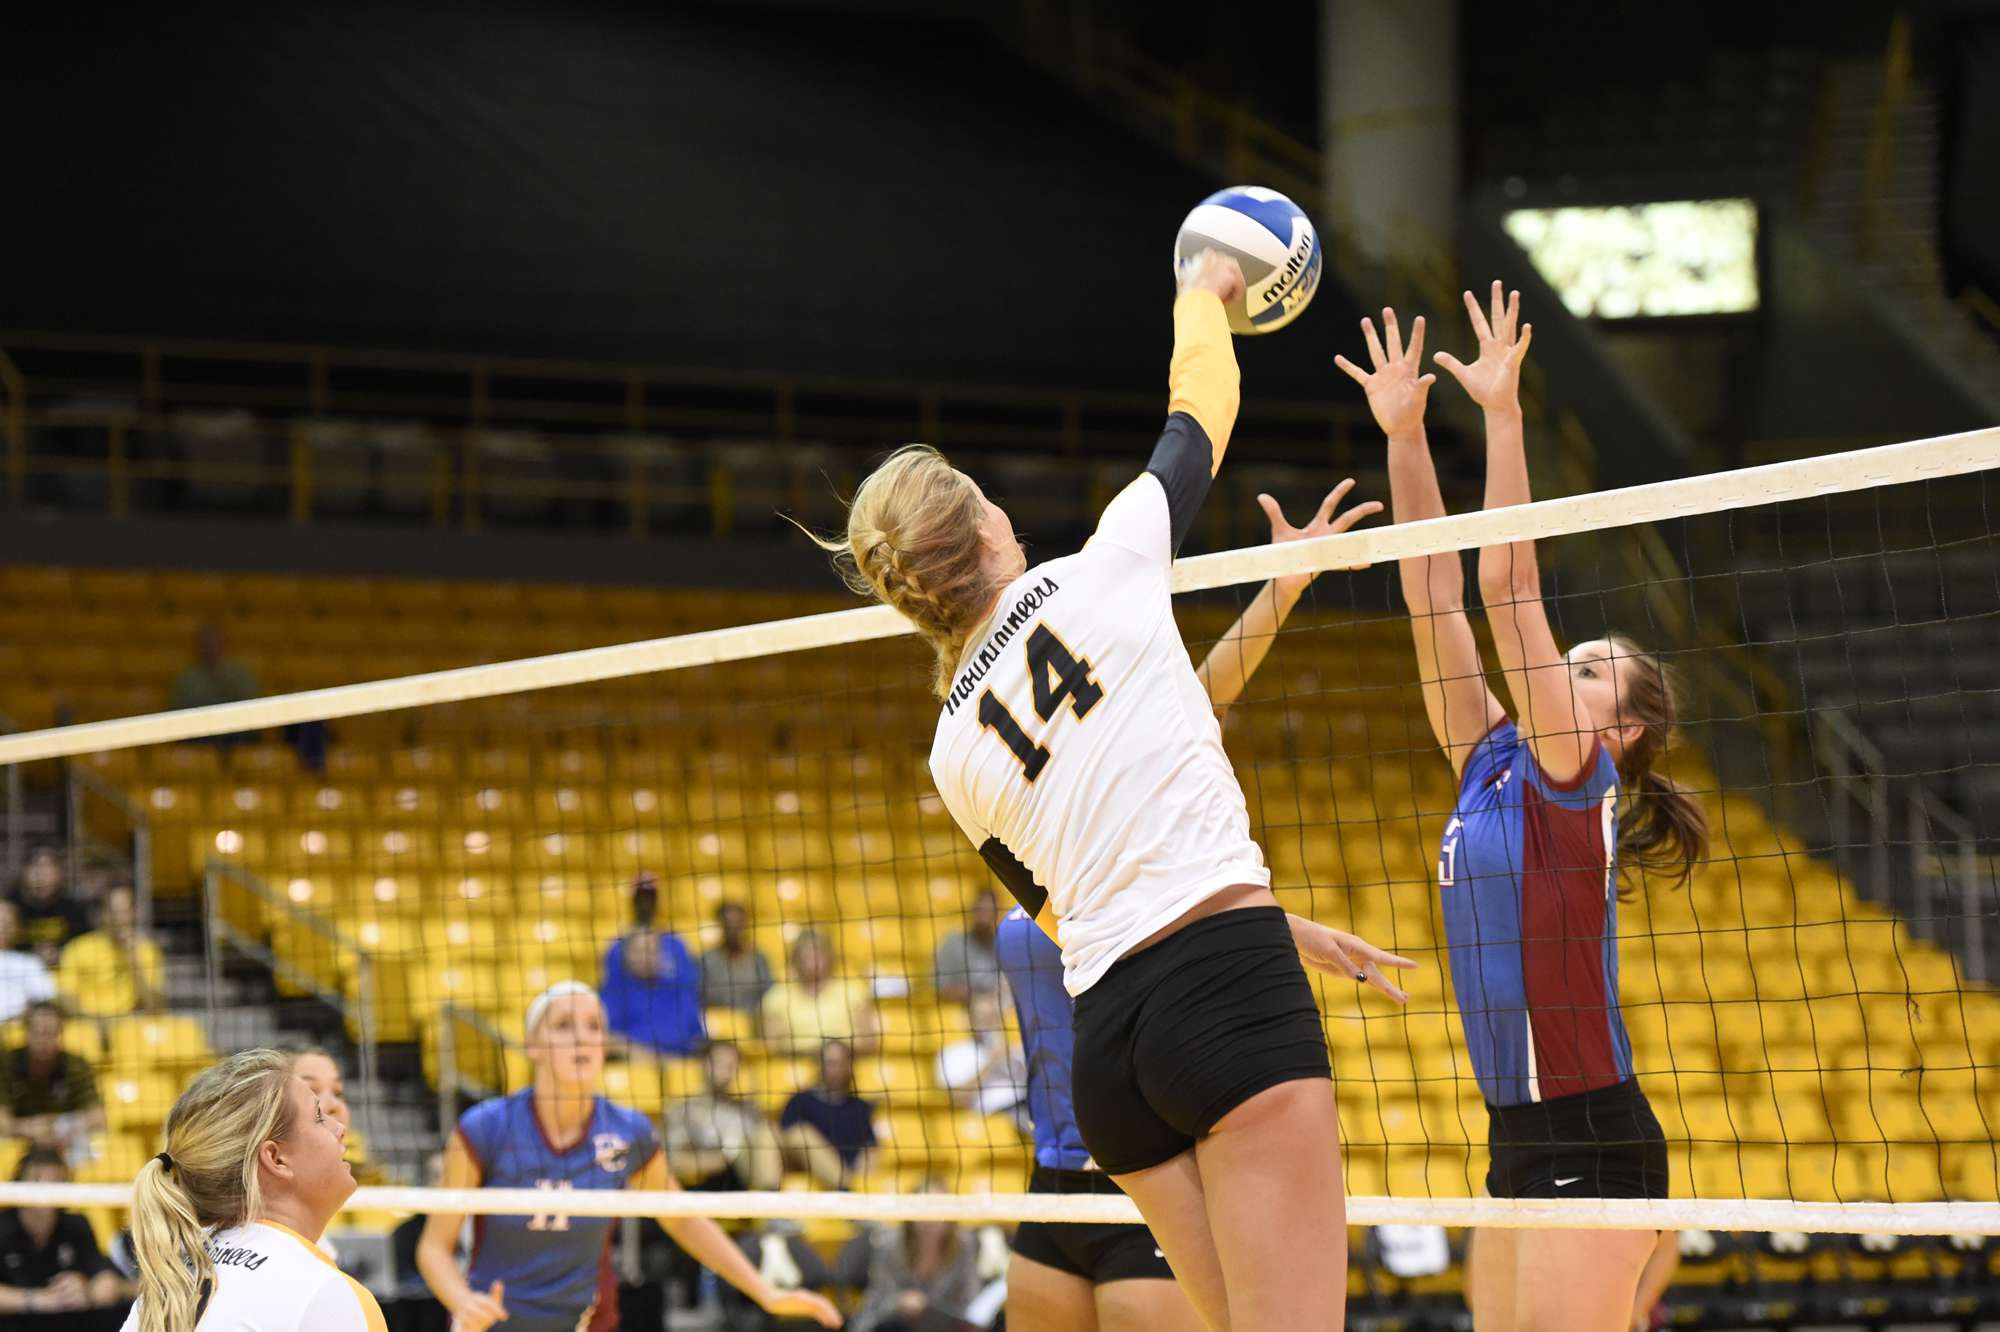 Former+App+State+middle+blocker+Lauren+Gray+goes+up+for+the+attack+during+last+year%E2%80%99s+home+game+against+Presbyterian.+Gray%2C+who+finished+fifth+in+conference+hitting+percentage+%28.314%29%2C+%0Agraduated+last+year.+